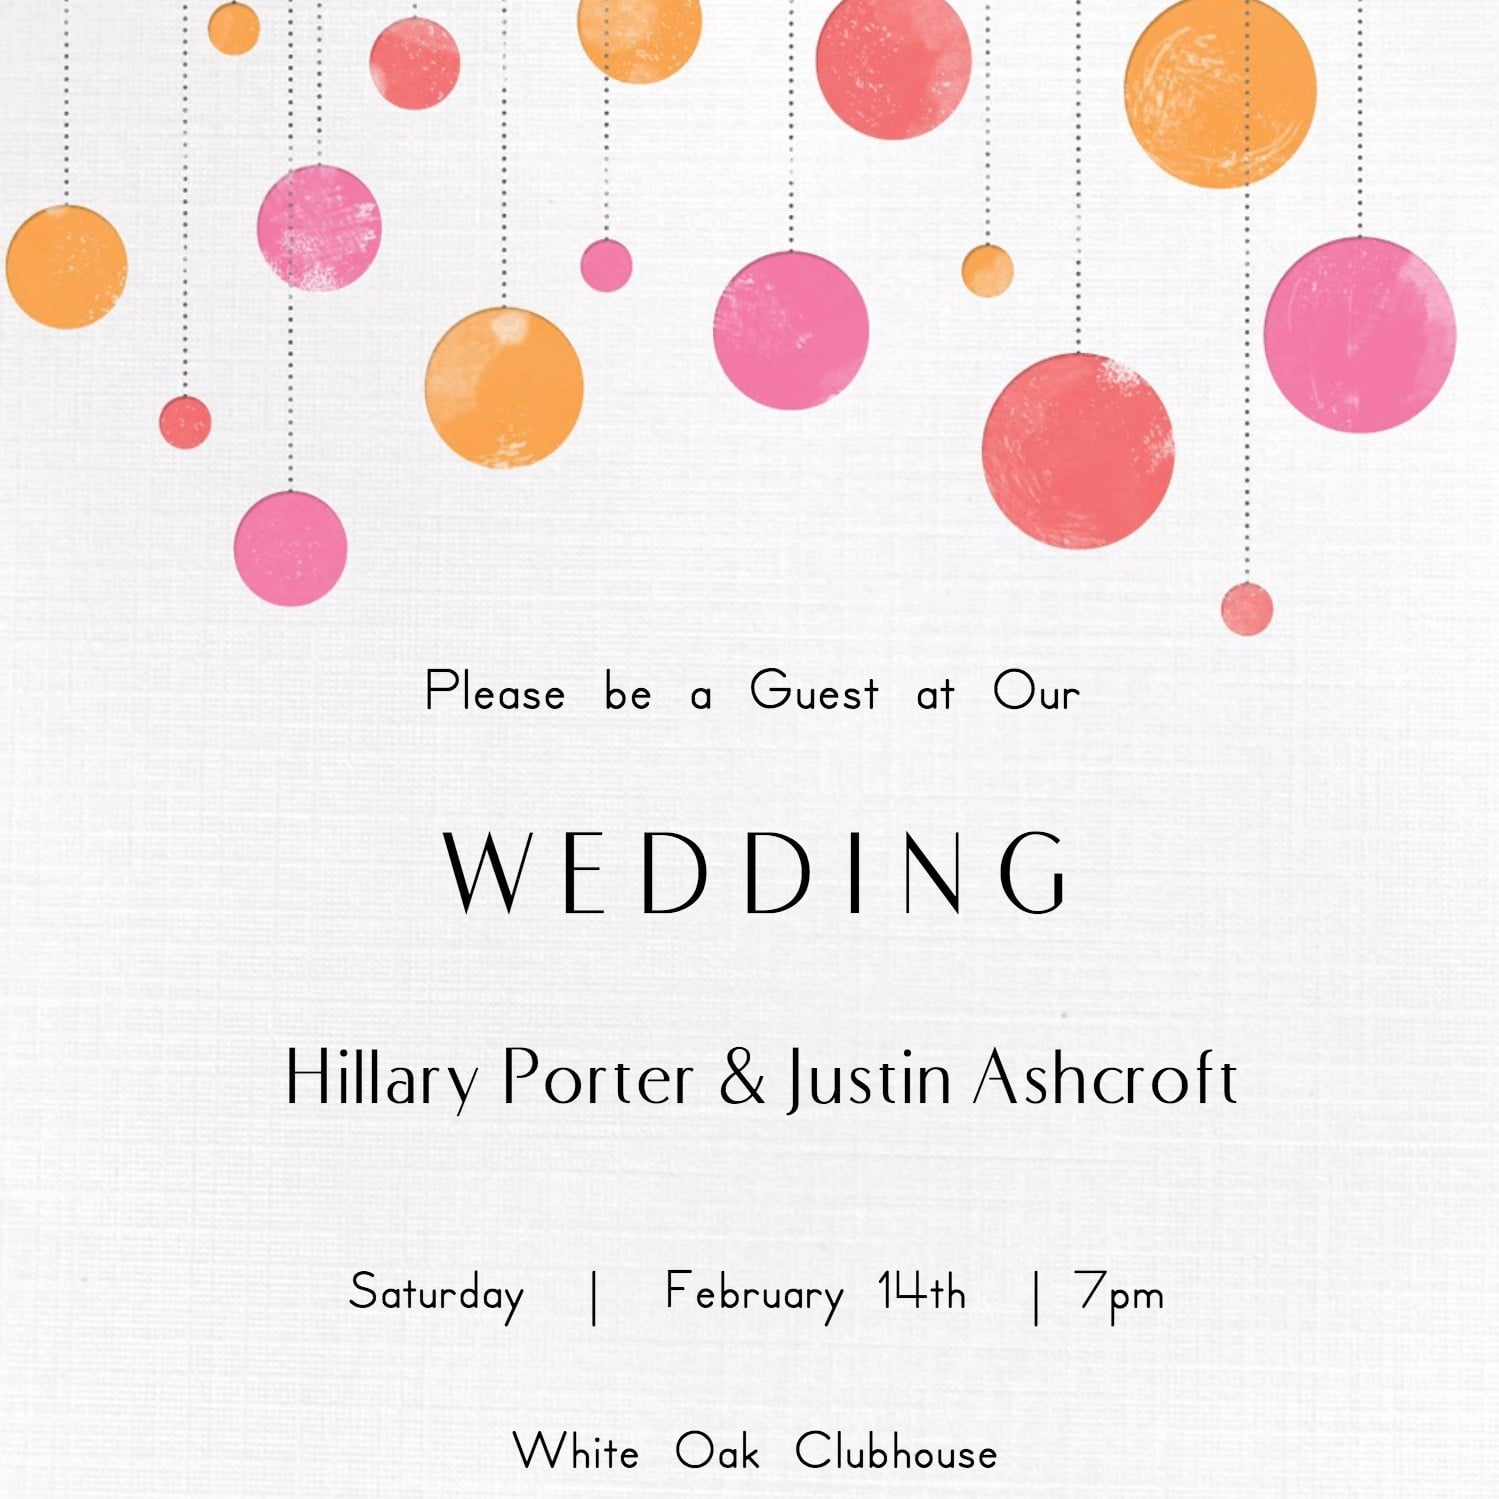 Free printable wedding invitations popsugar smart living solutioingenieria Choice Image